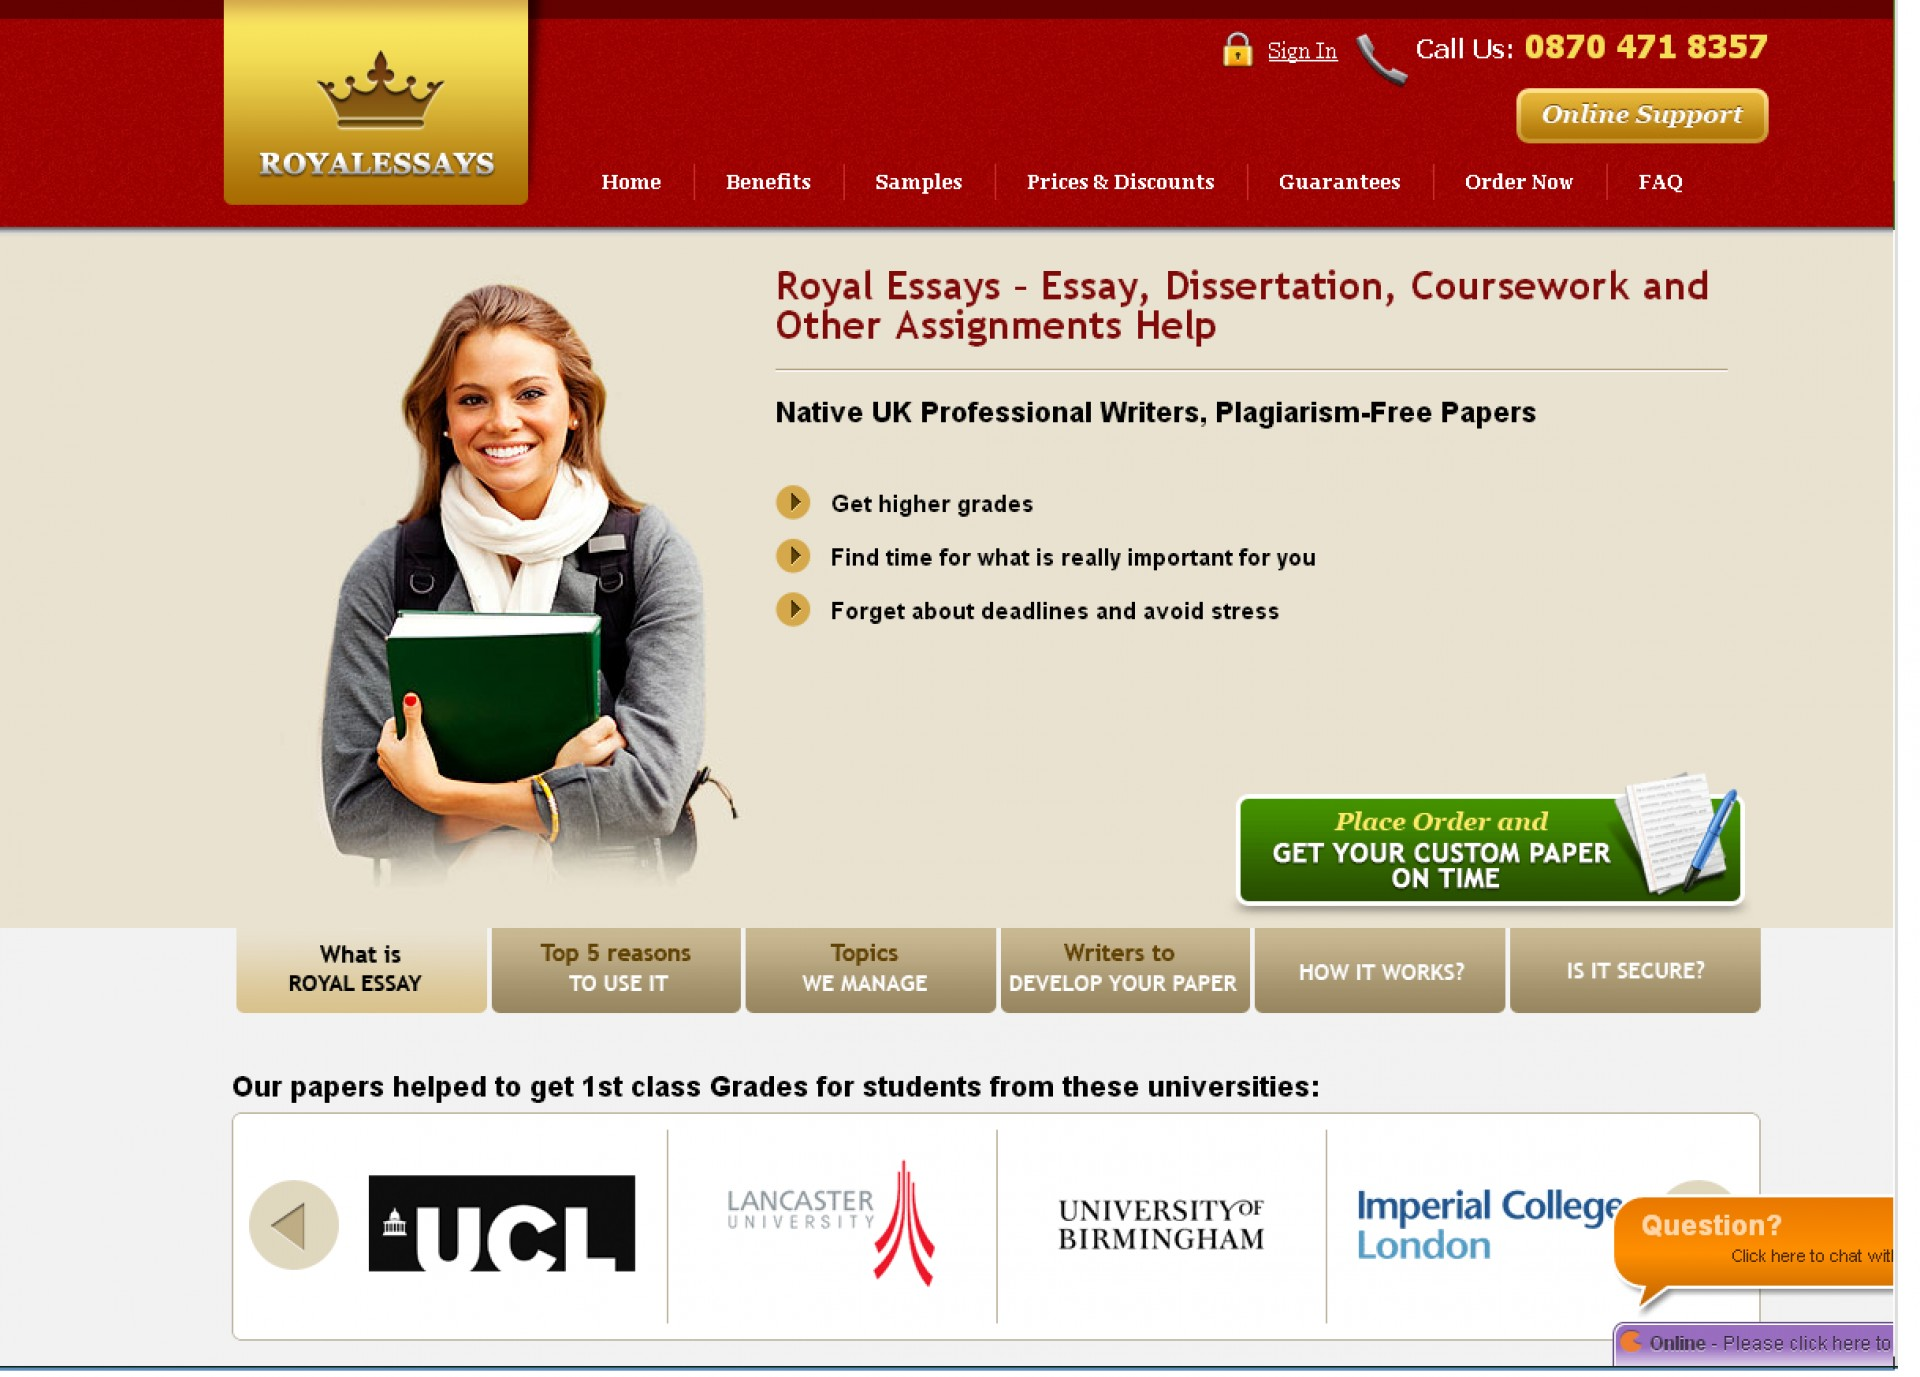 005 Custom Essay Writing Royalessays Co Uk Review Awesome Services Canada Reviews Service 1920